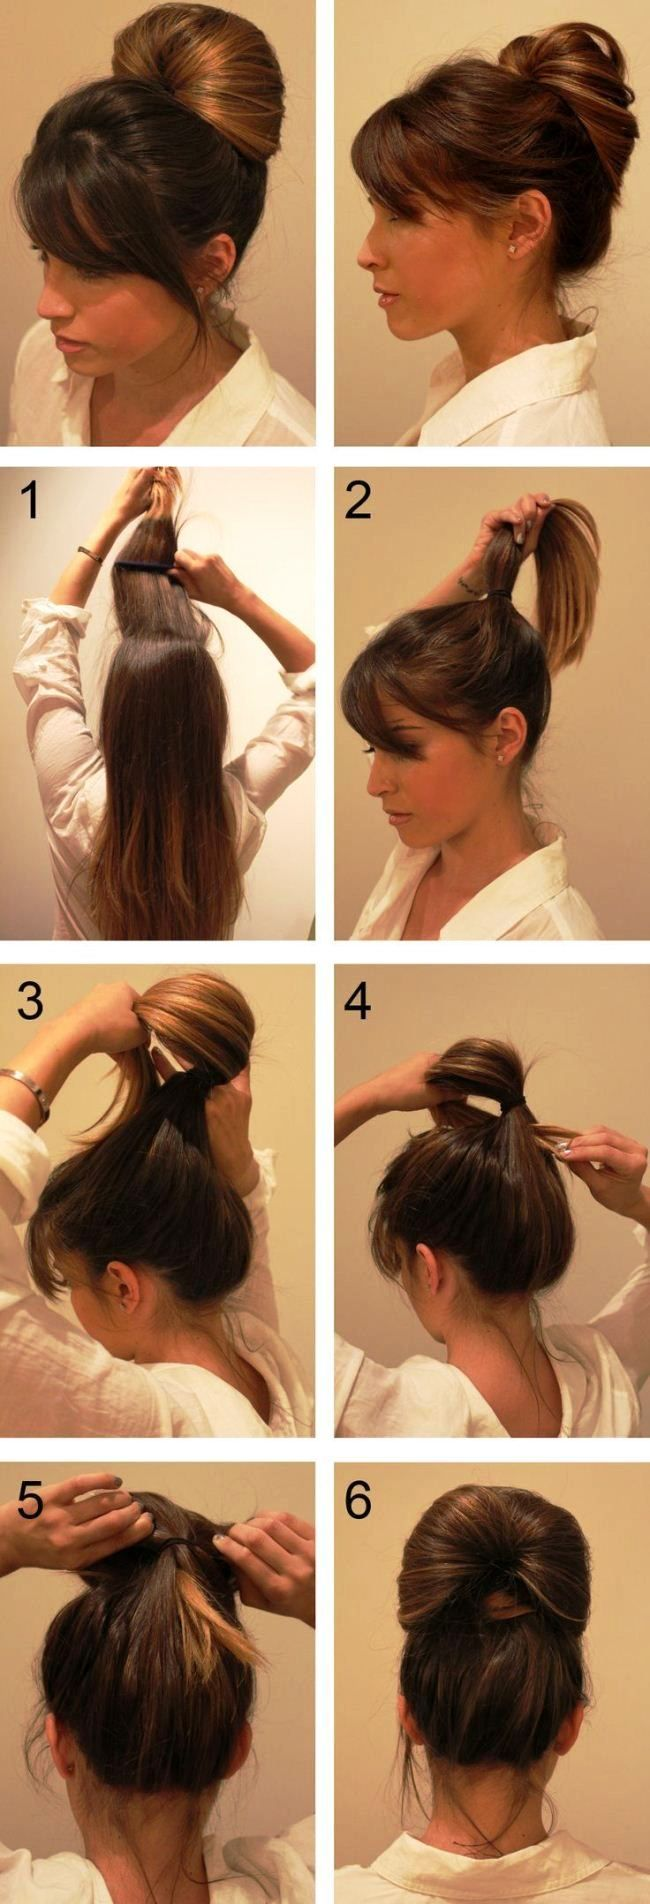 237 best party hairstyles for girl images on pinterest hairstyle simple party hairstyles for long hair tutorials step by step hairstyle weddingdiy solutioingenieria Images